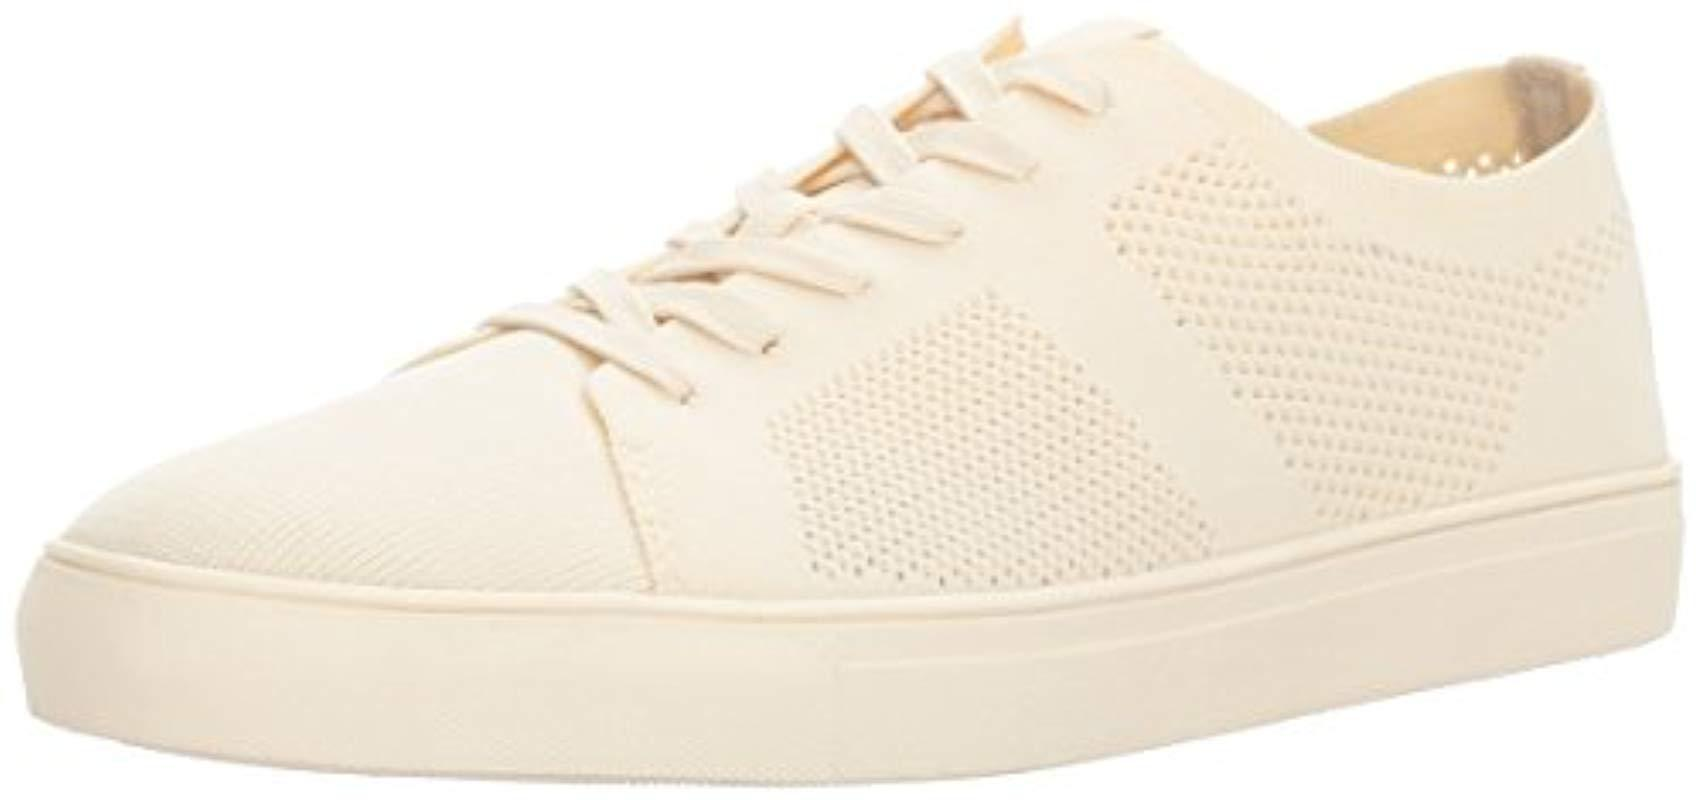 ac5db5a19dd Lyst - Steve Madden Wexler Fashion Sneaker in Natural for Men - Save 49%